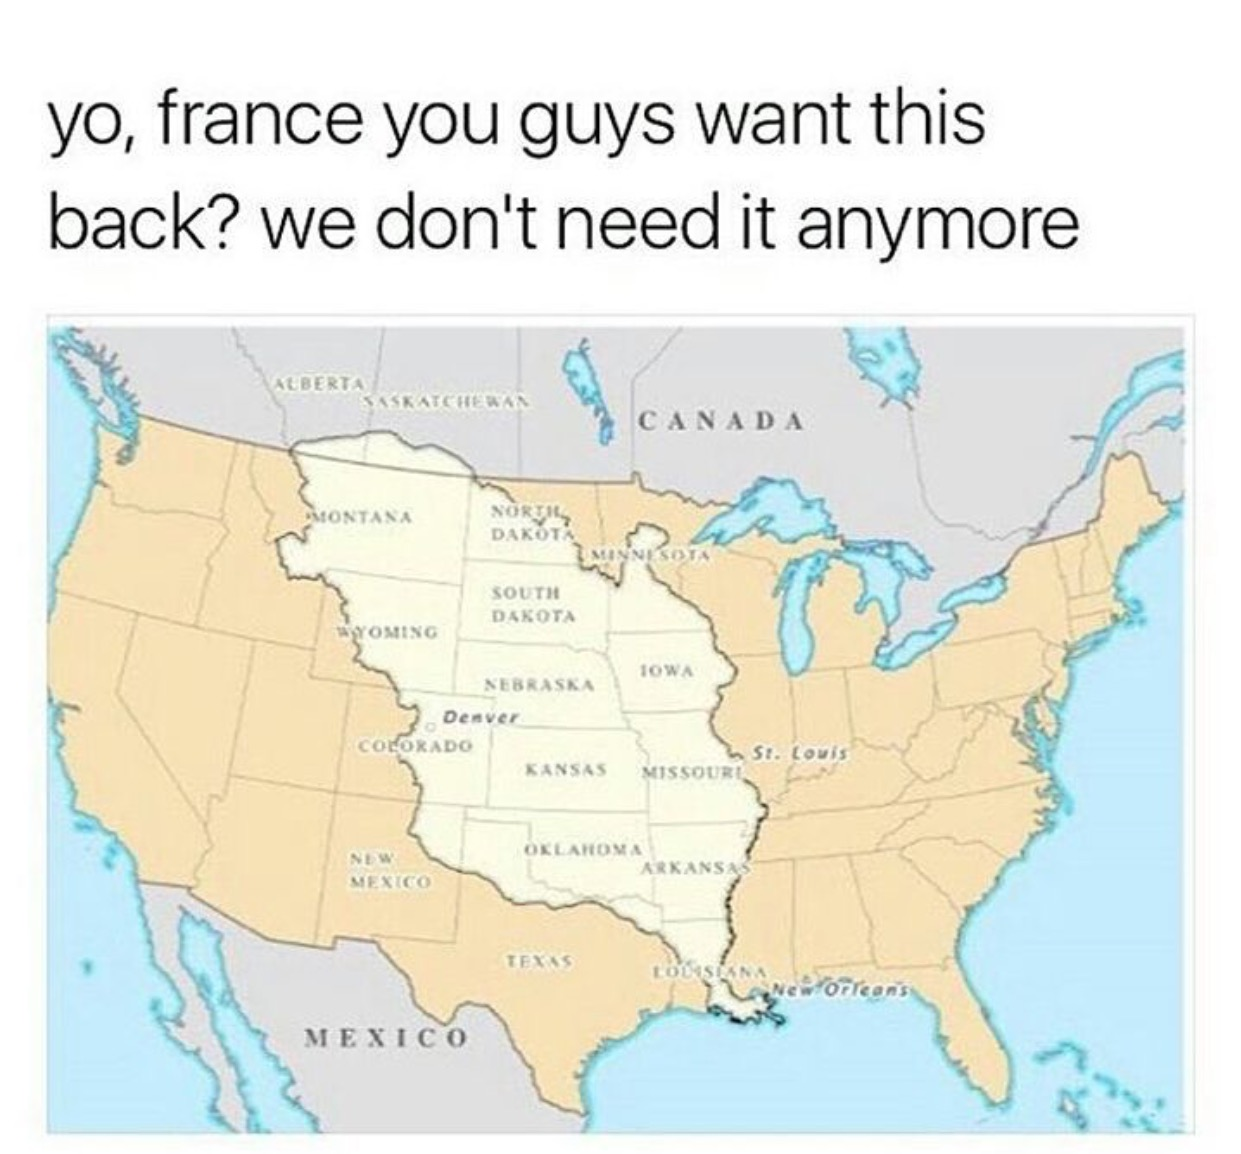 To show just how engrained the purchase is, this meme appeared after the 2016 election with comments asking about France's return policy.